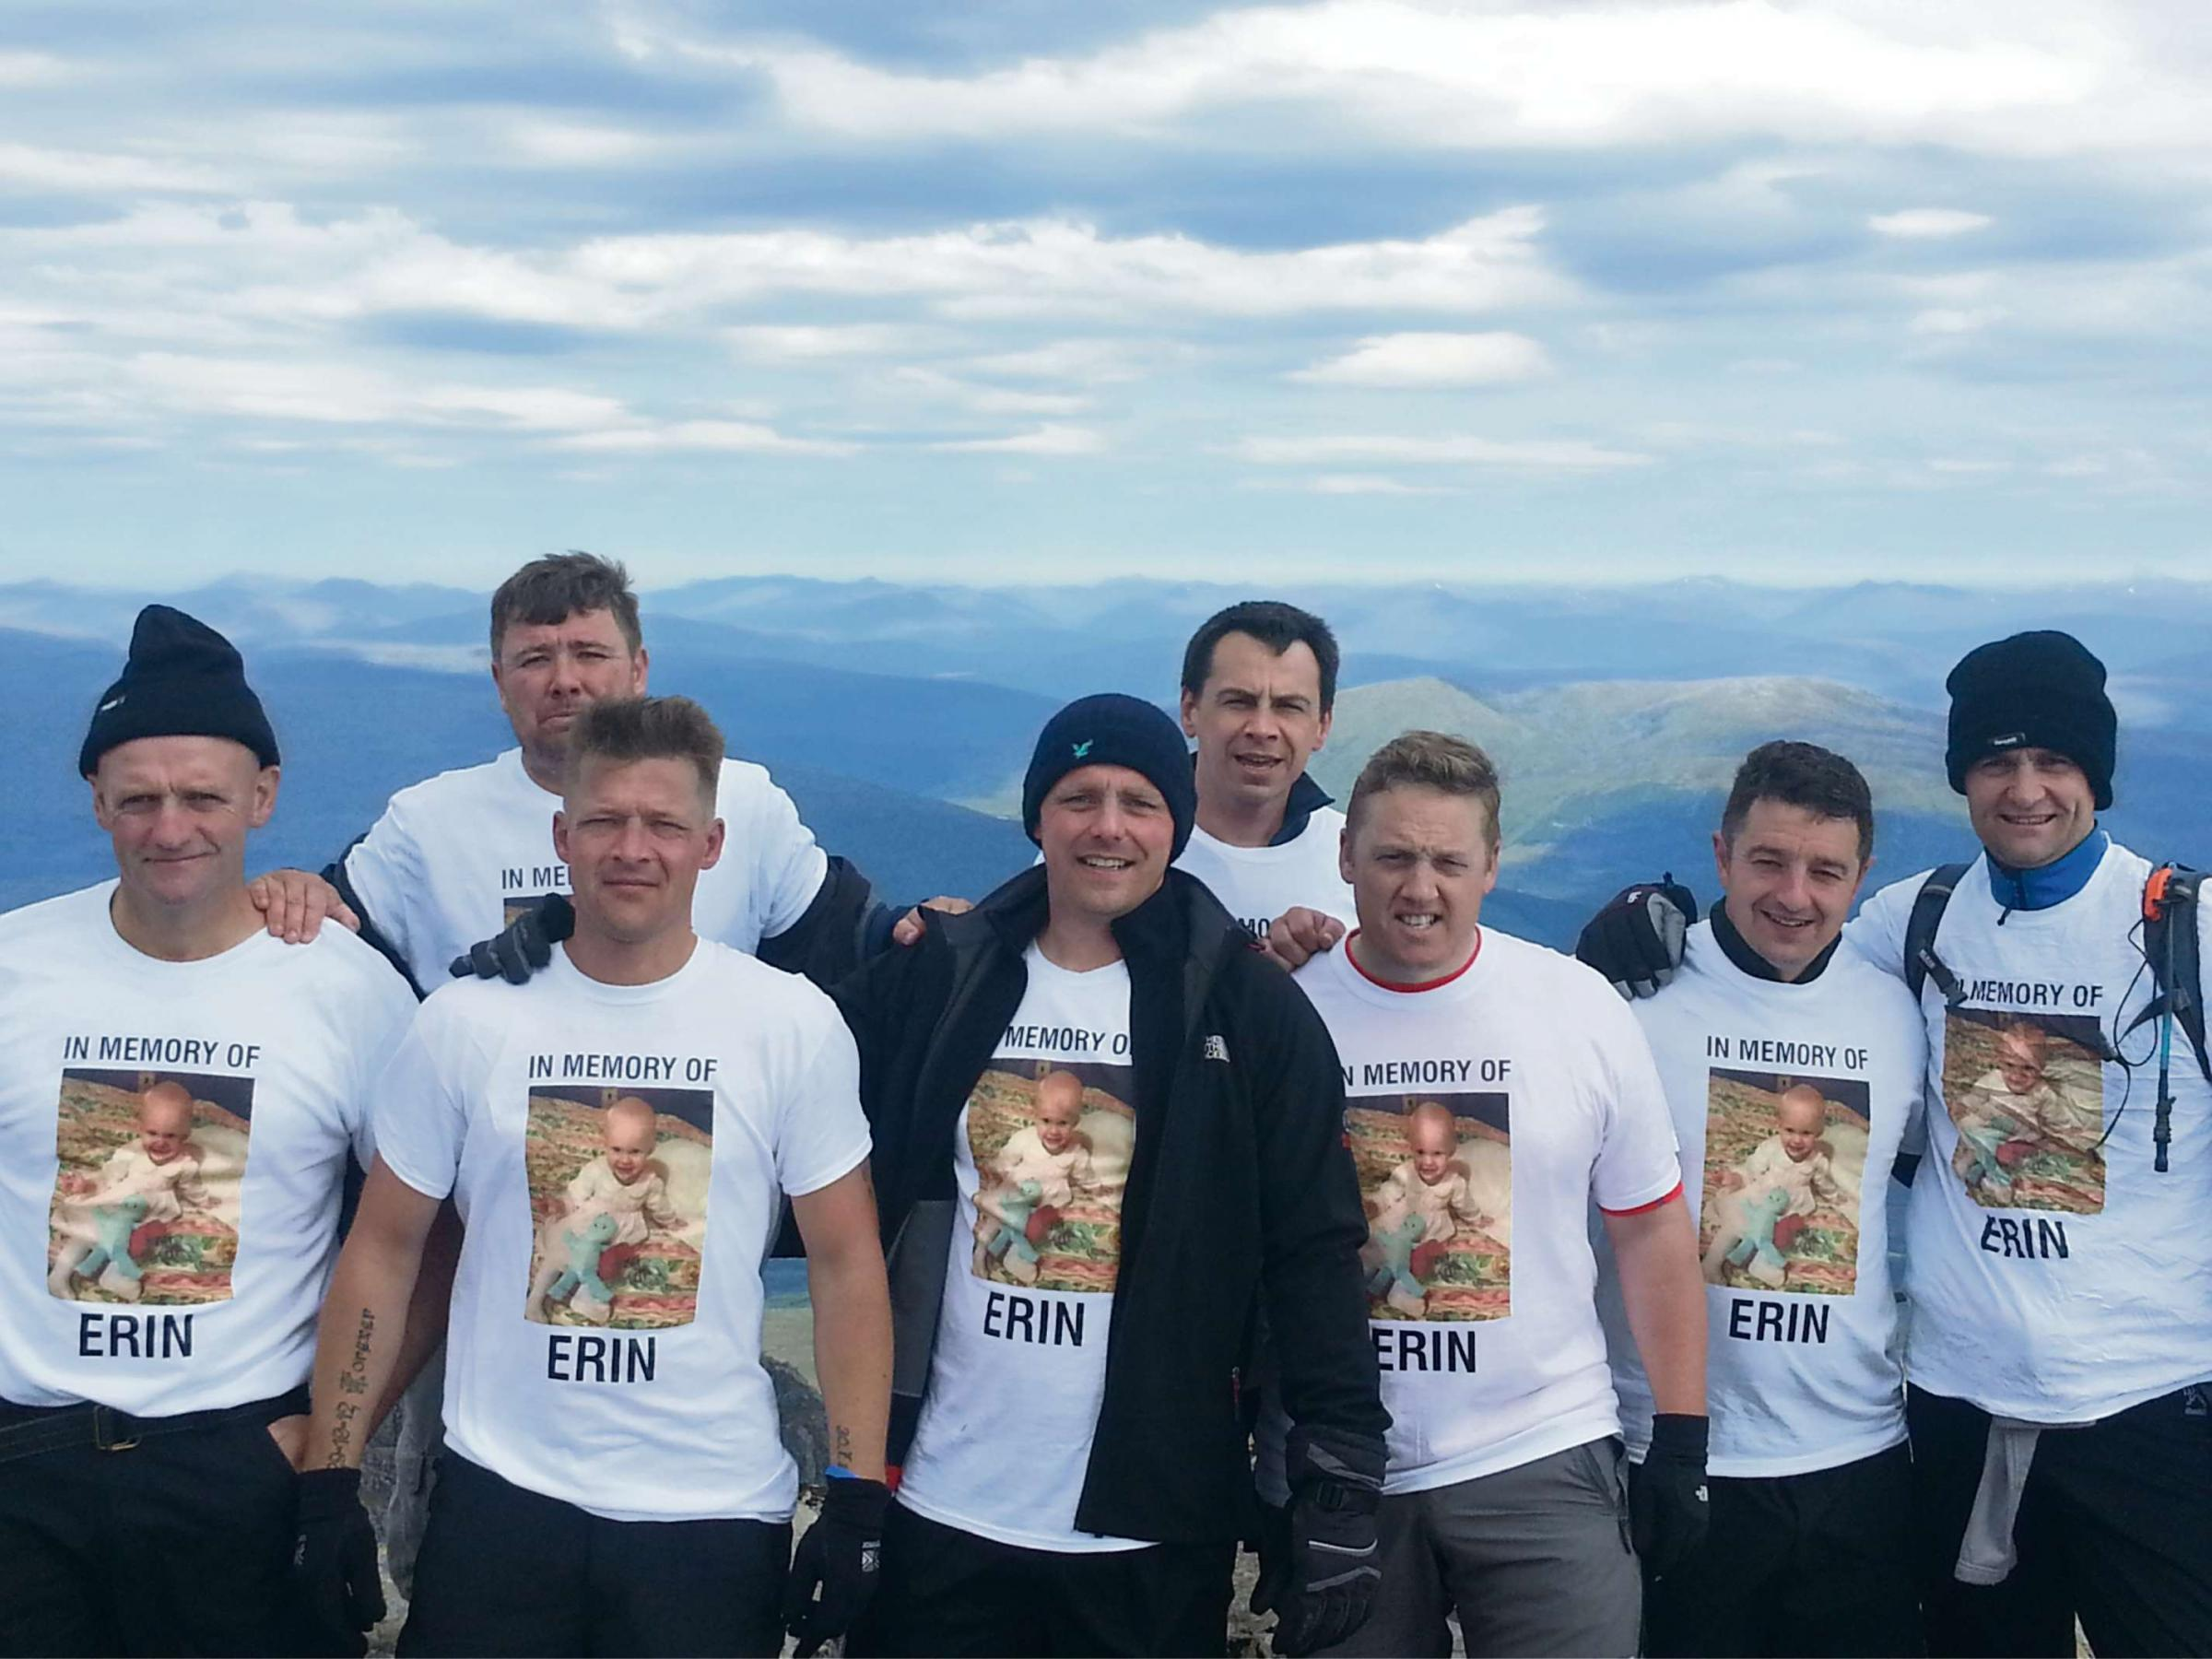 Team Erin on top of Ben Nevis.